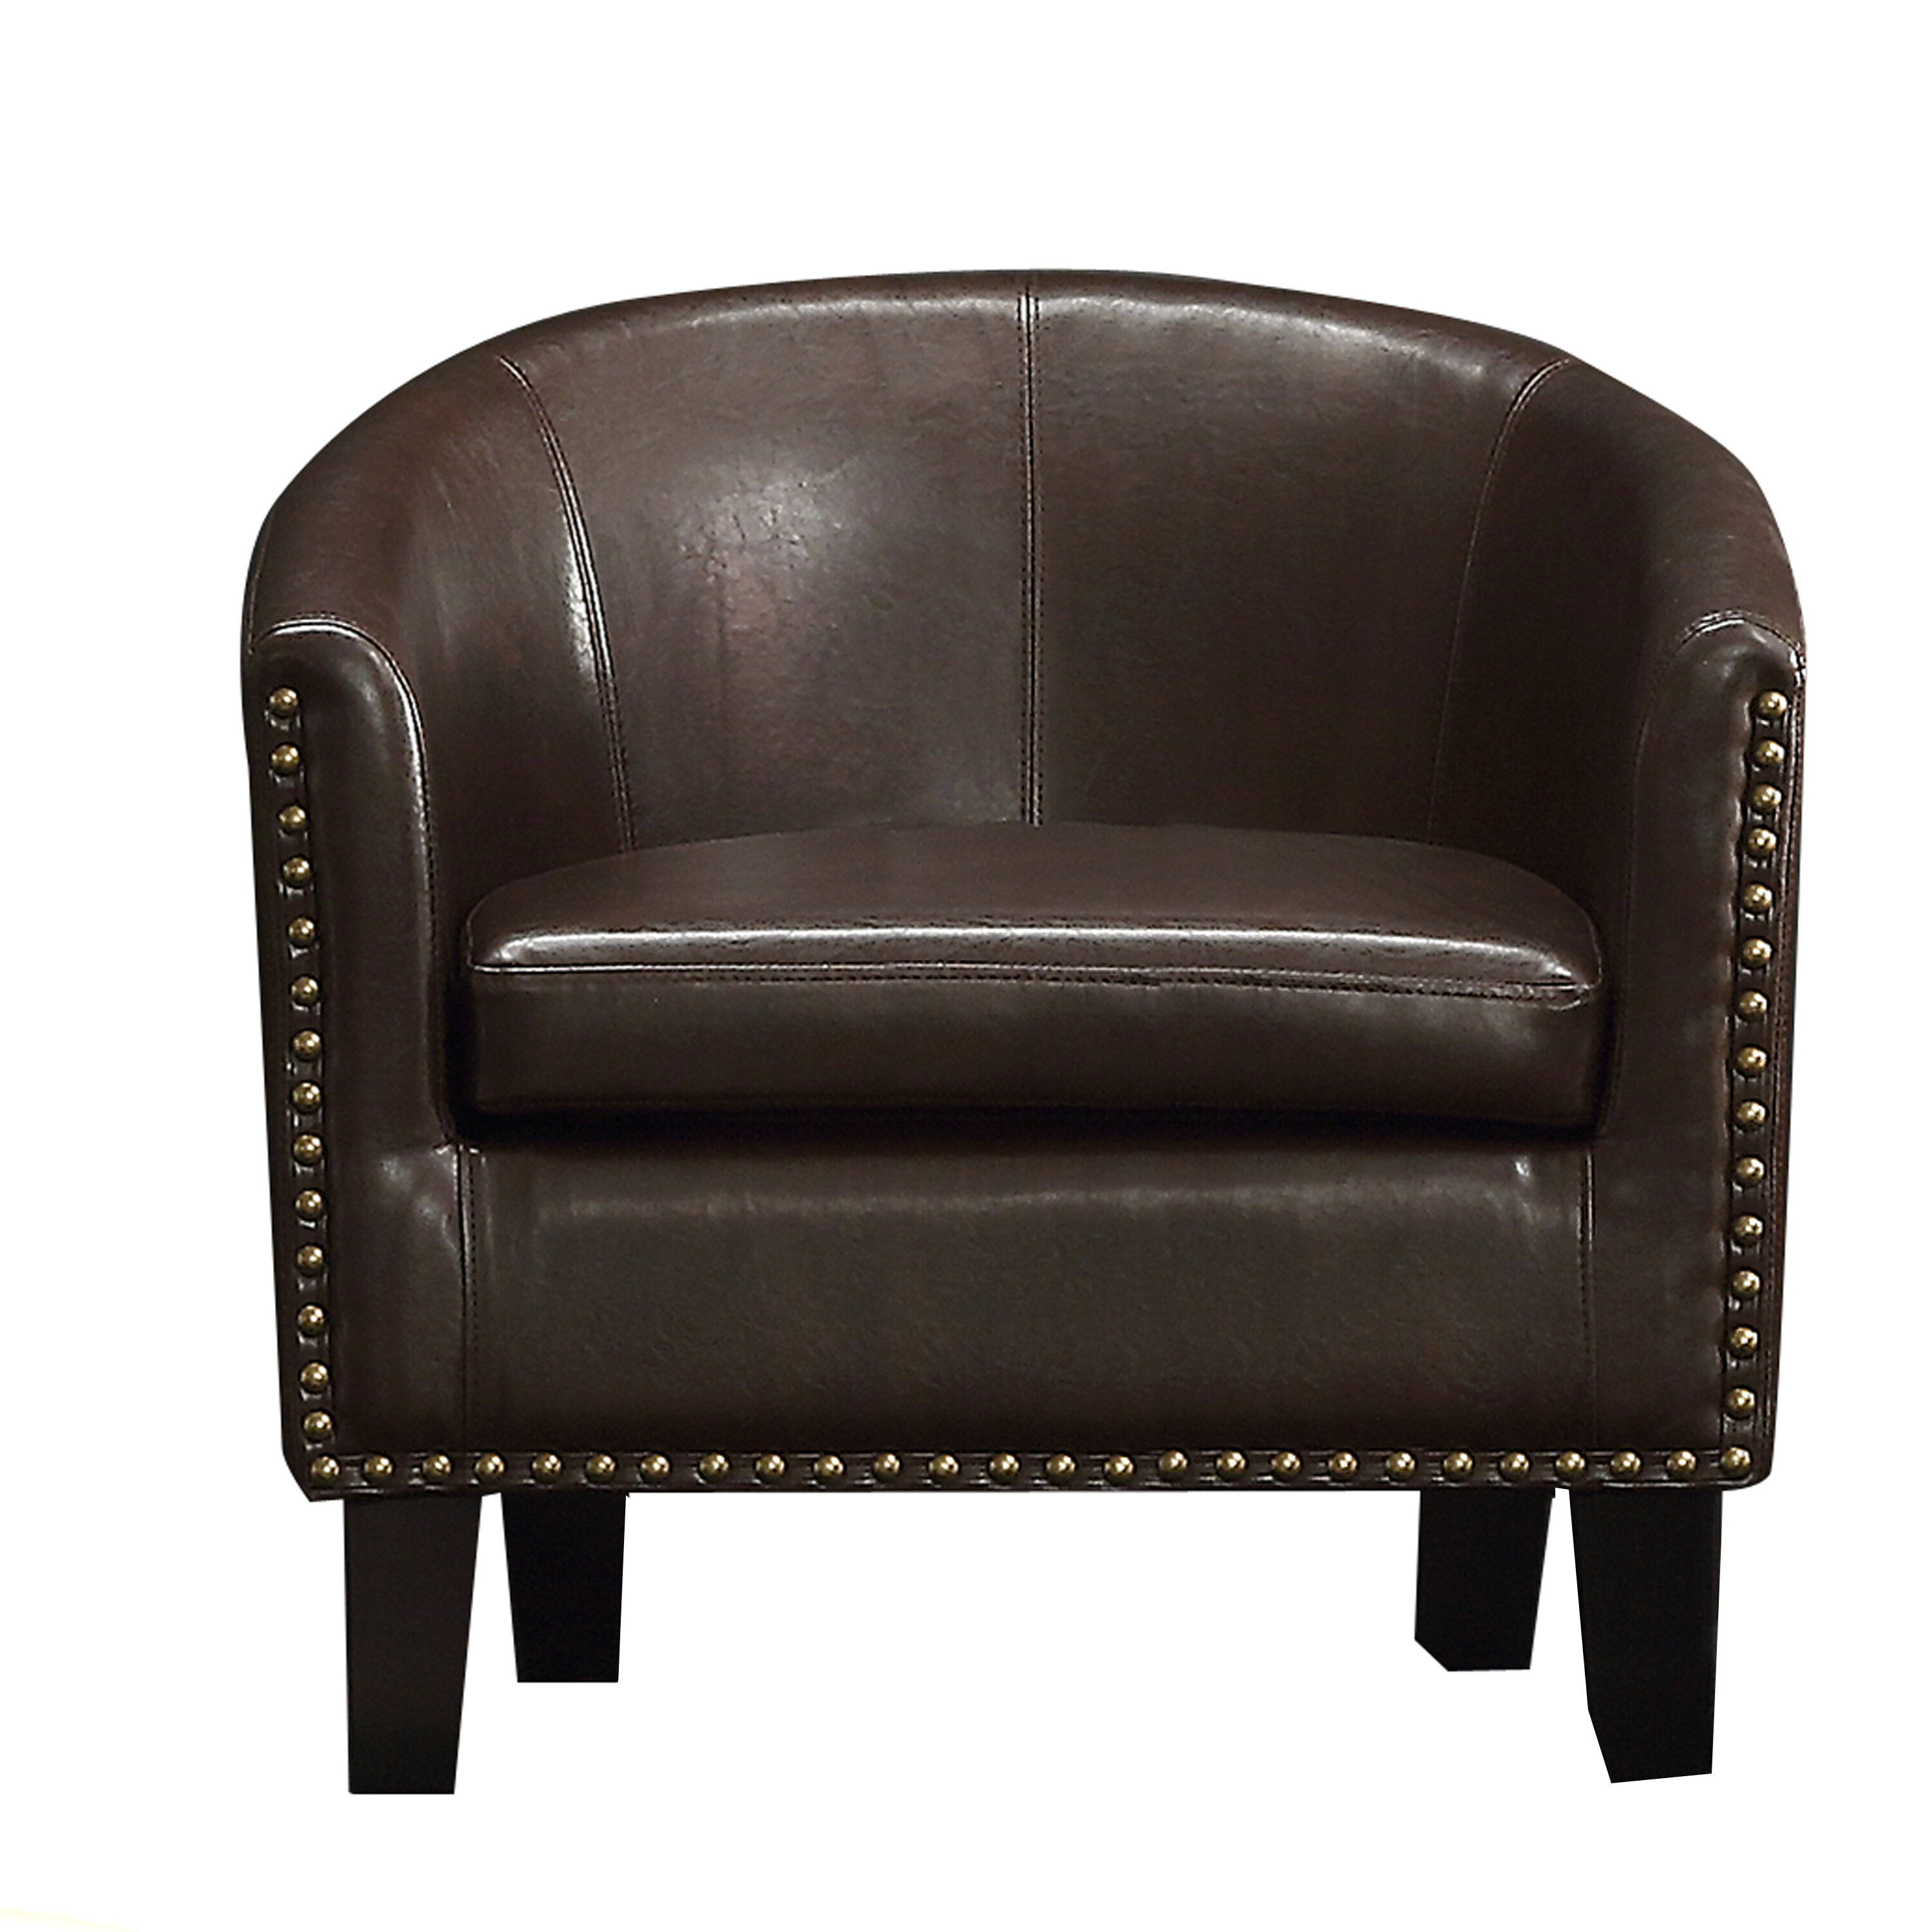 thomas garden overstock safavieh indoor chairs honey product brown today st barrel home wicker chair shipping free